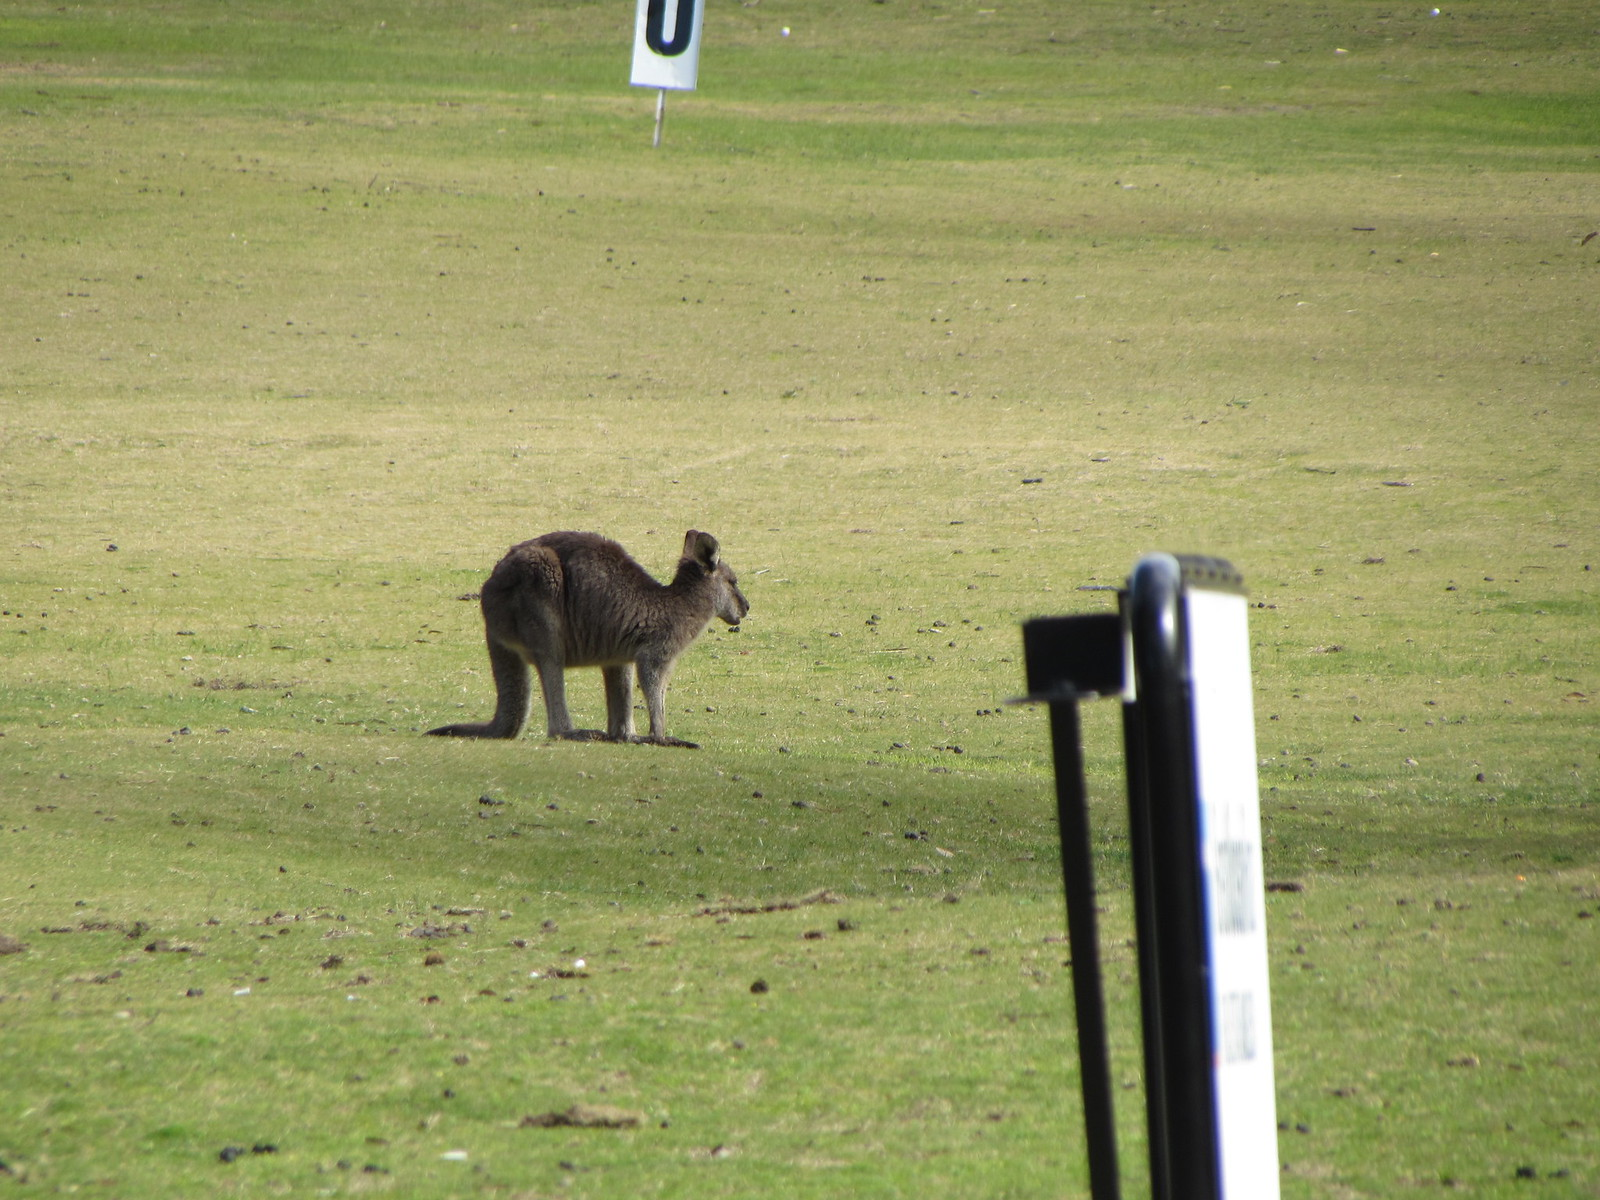 Kangaroo at a golf course (hat tip: Lonely Planet Guide)